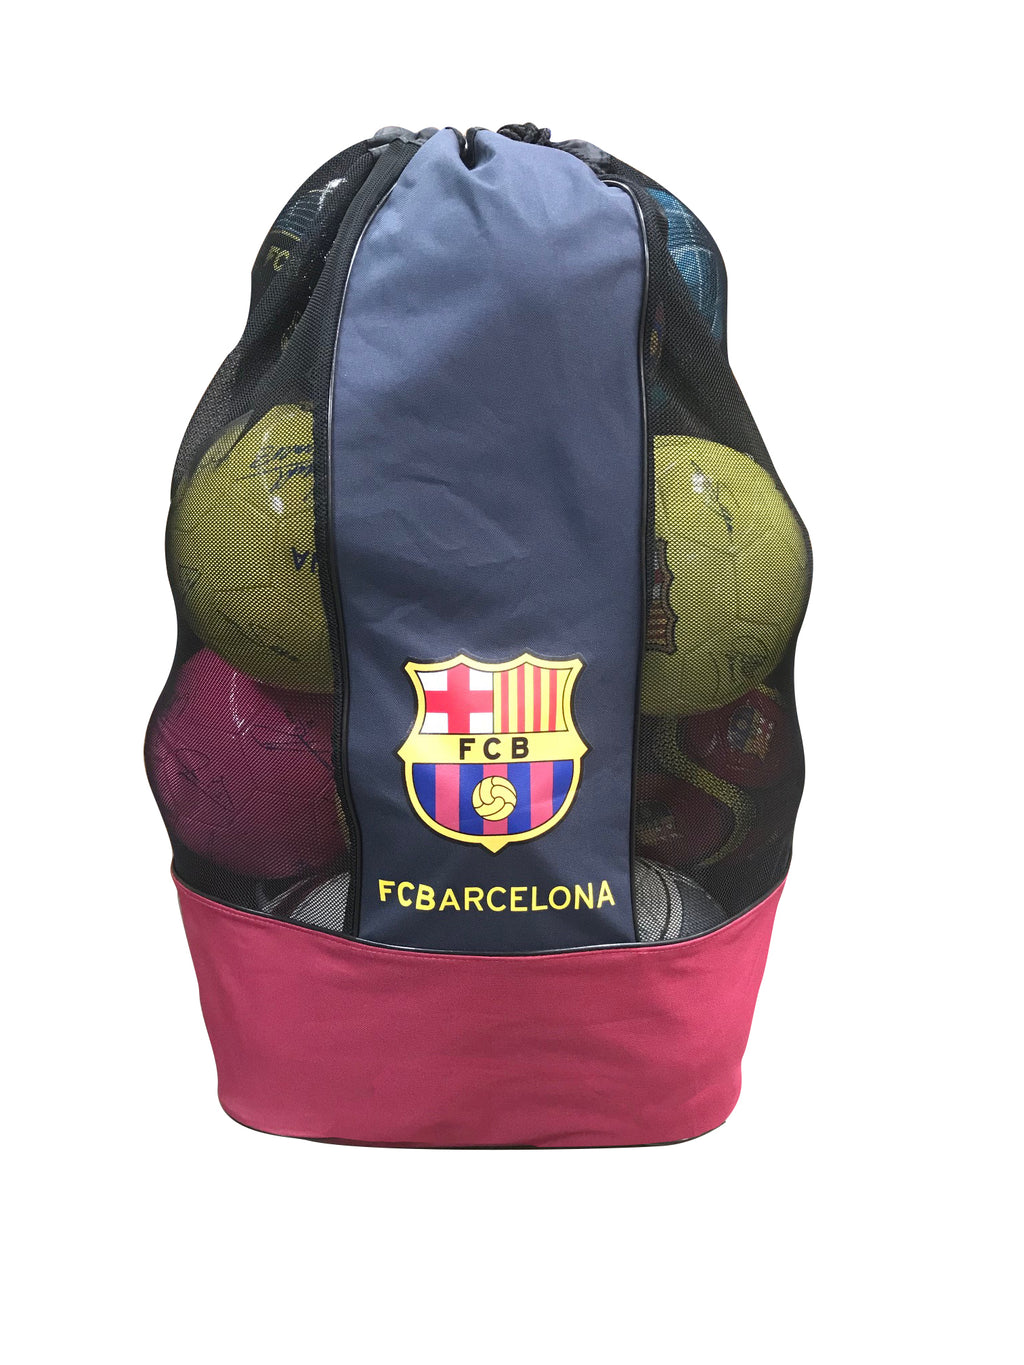 FC Barcelona Heavy Duty Mesh Equipment Ball Bag